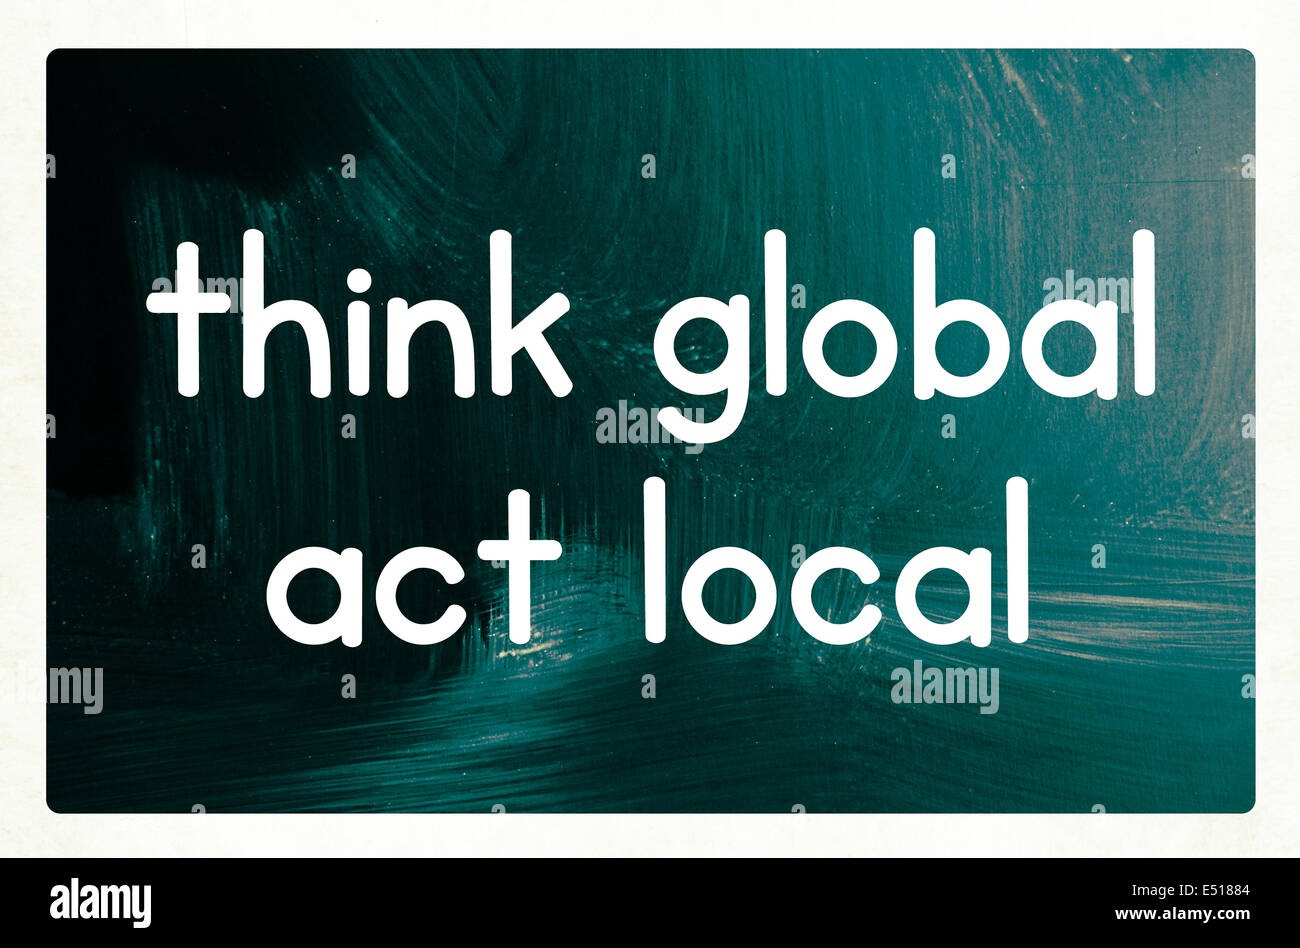 think global act local concept - Stock Image